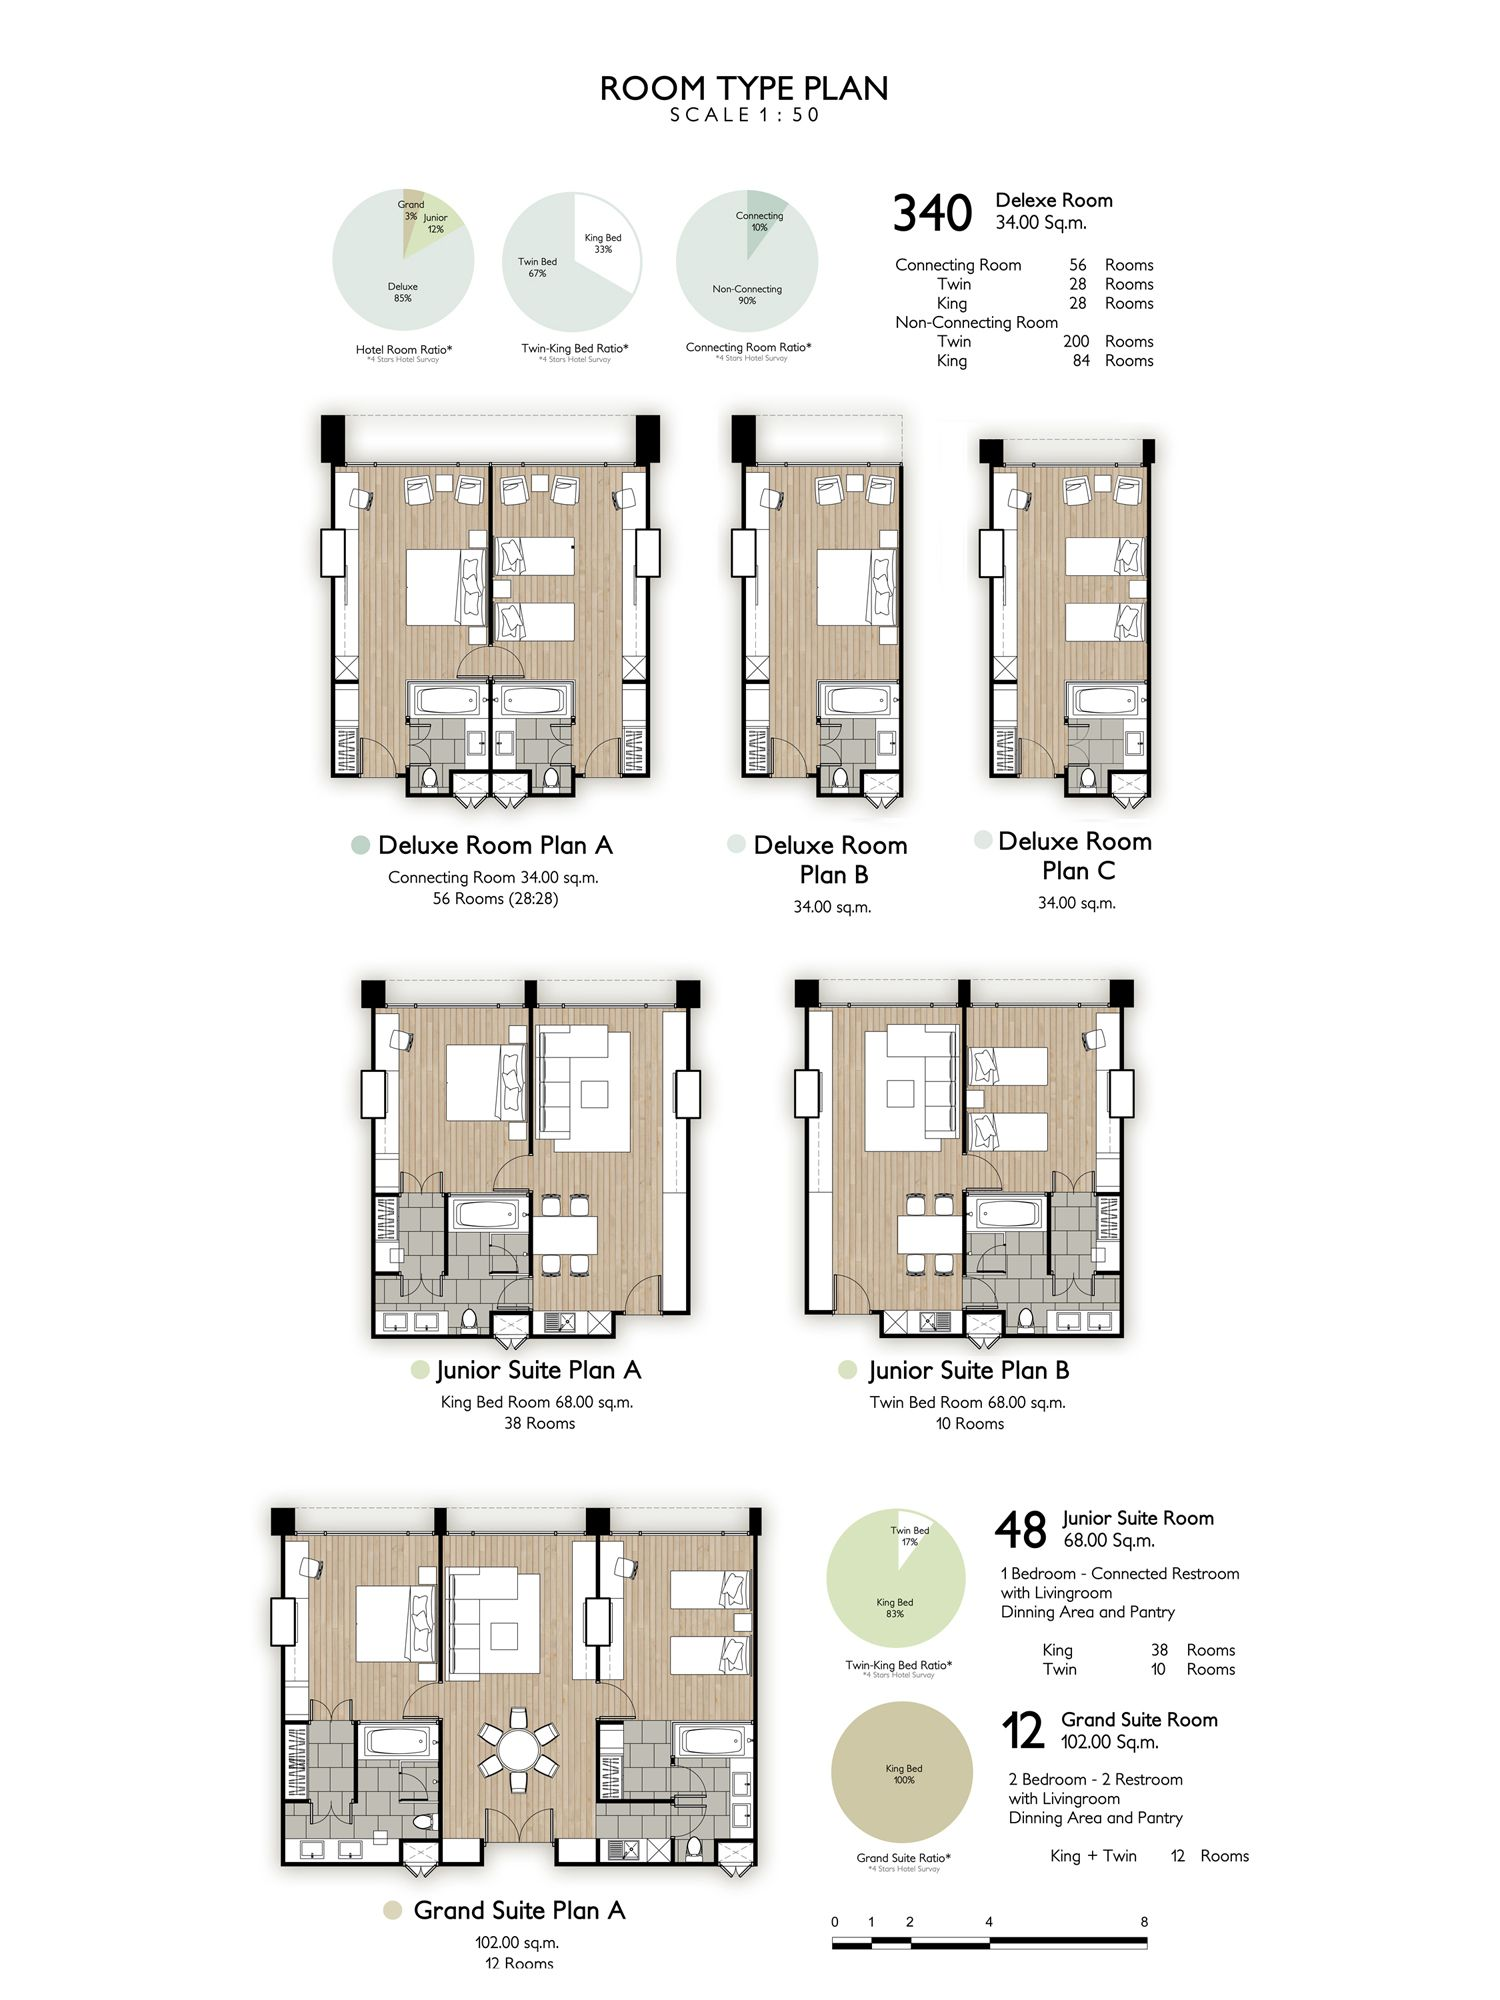 Hotel Room Plans Designs hotel room floor plans | deploying wifi in the hospitality